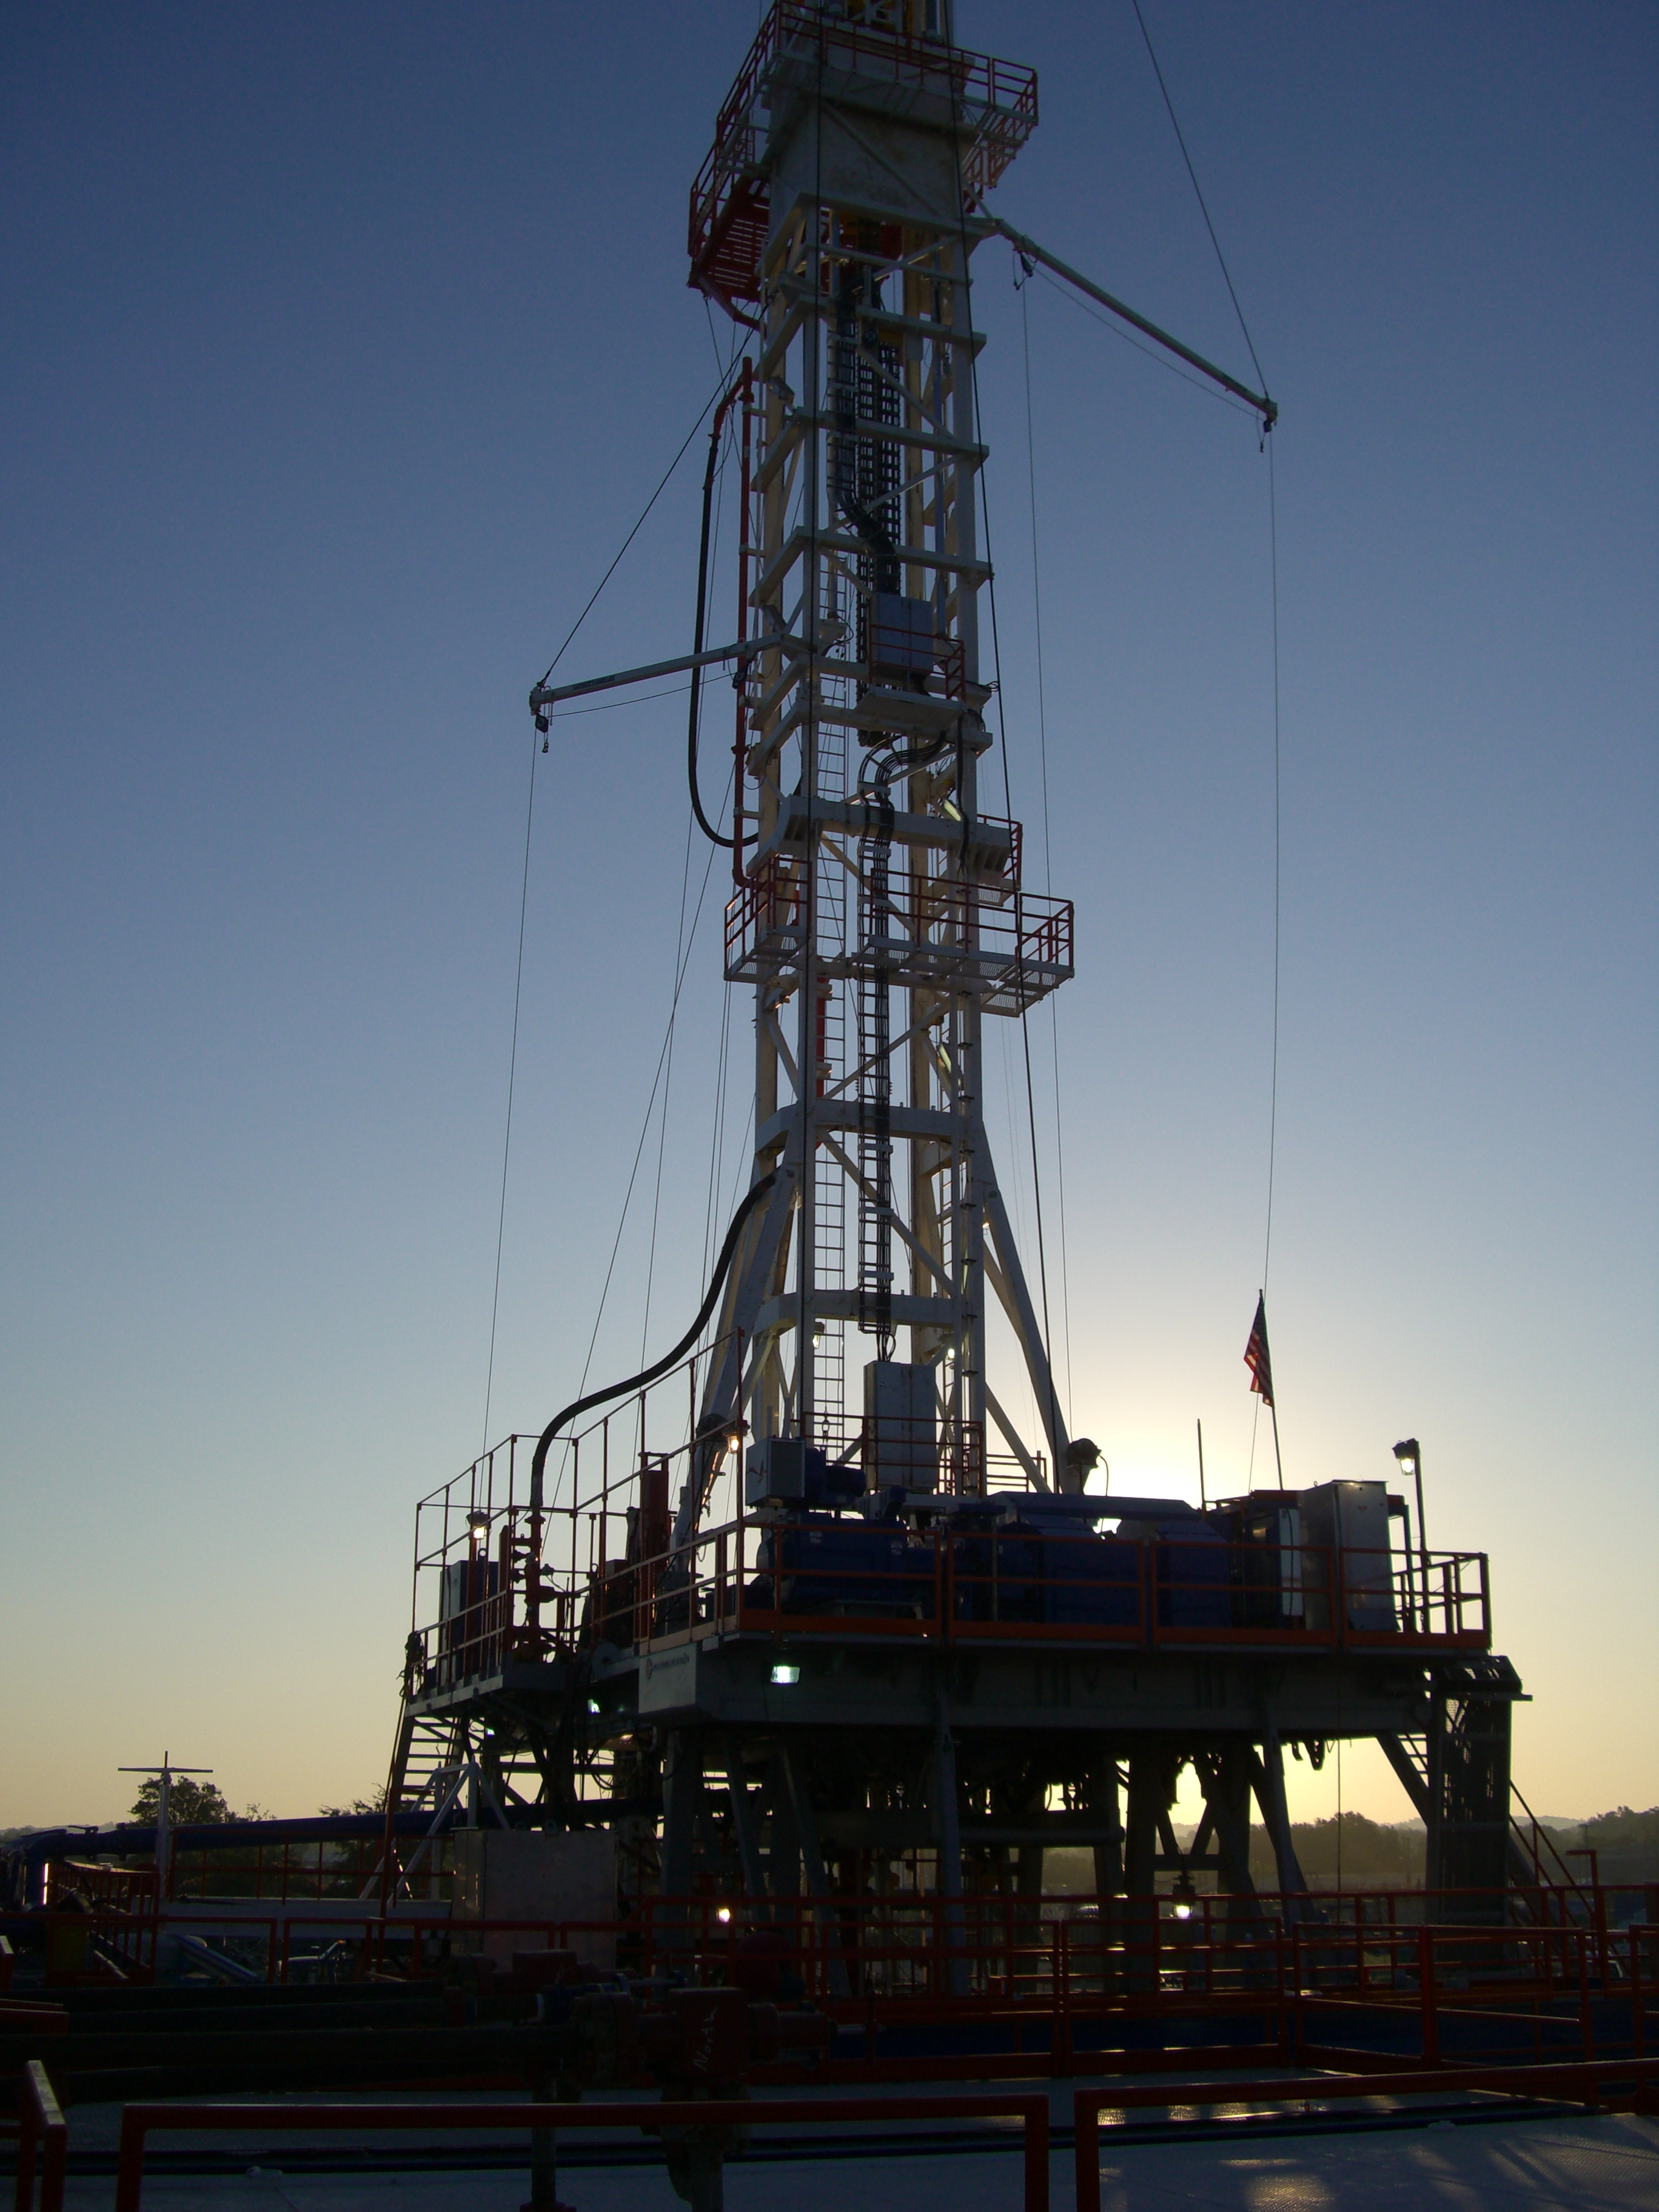 All Star I & E, Inc. Drilling Rig